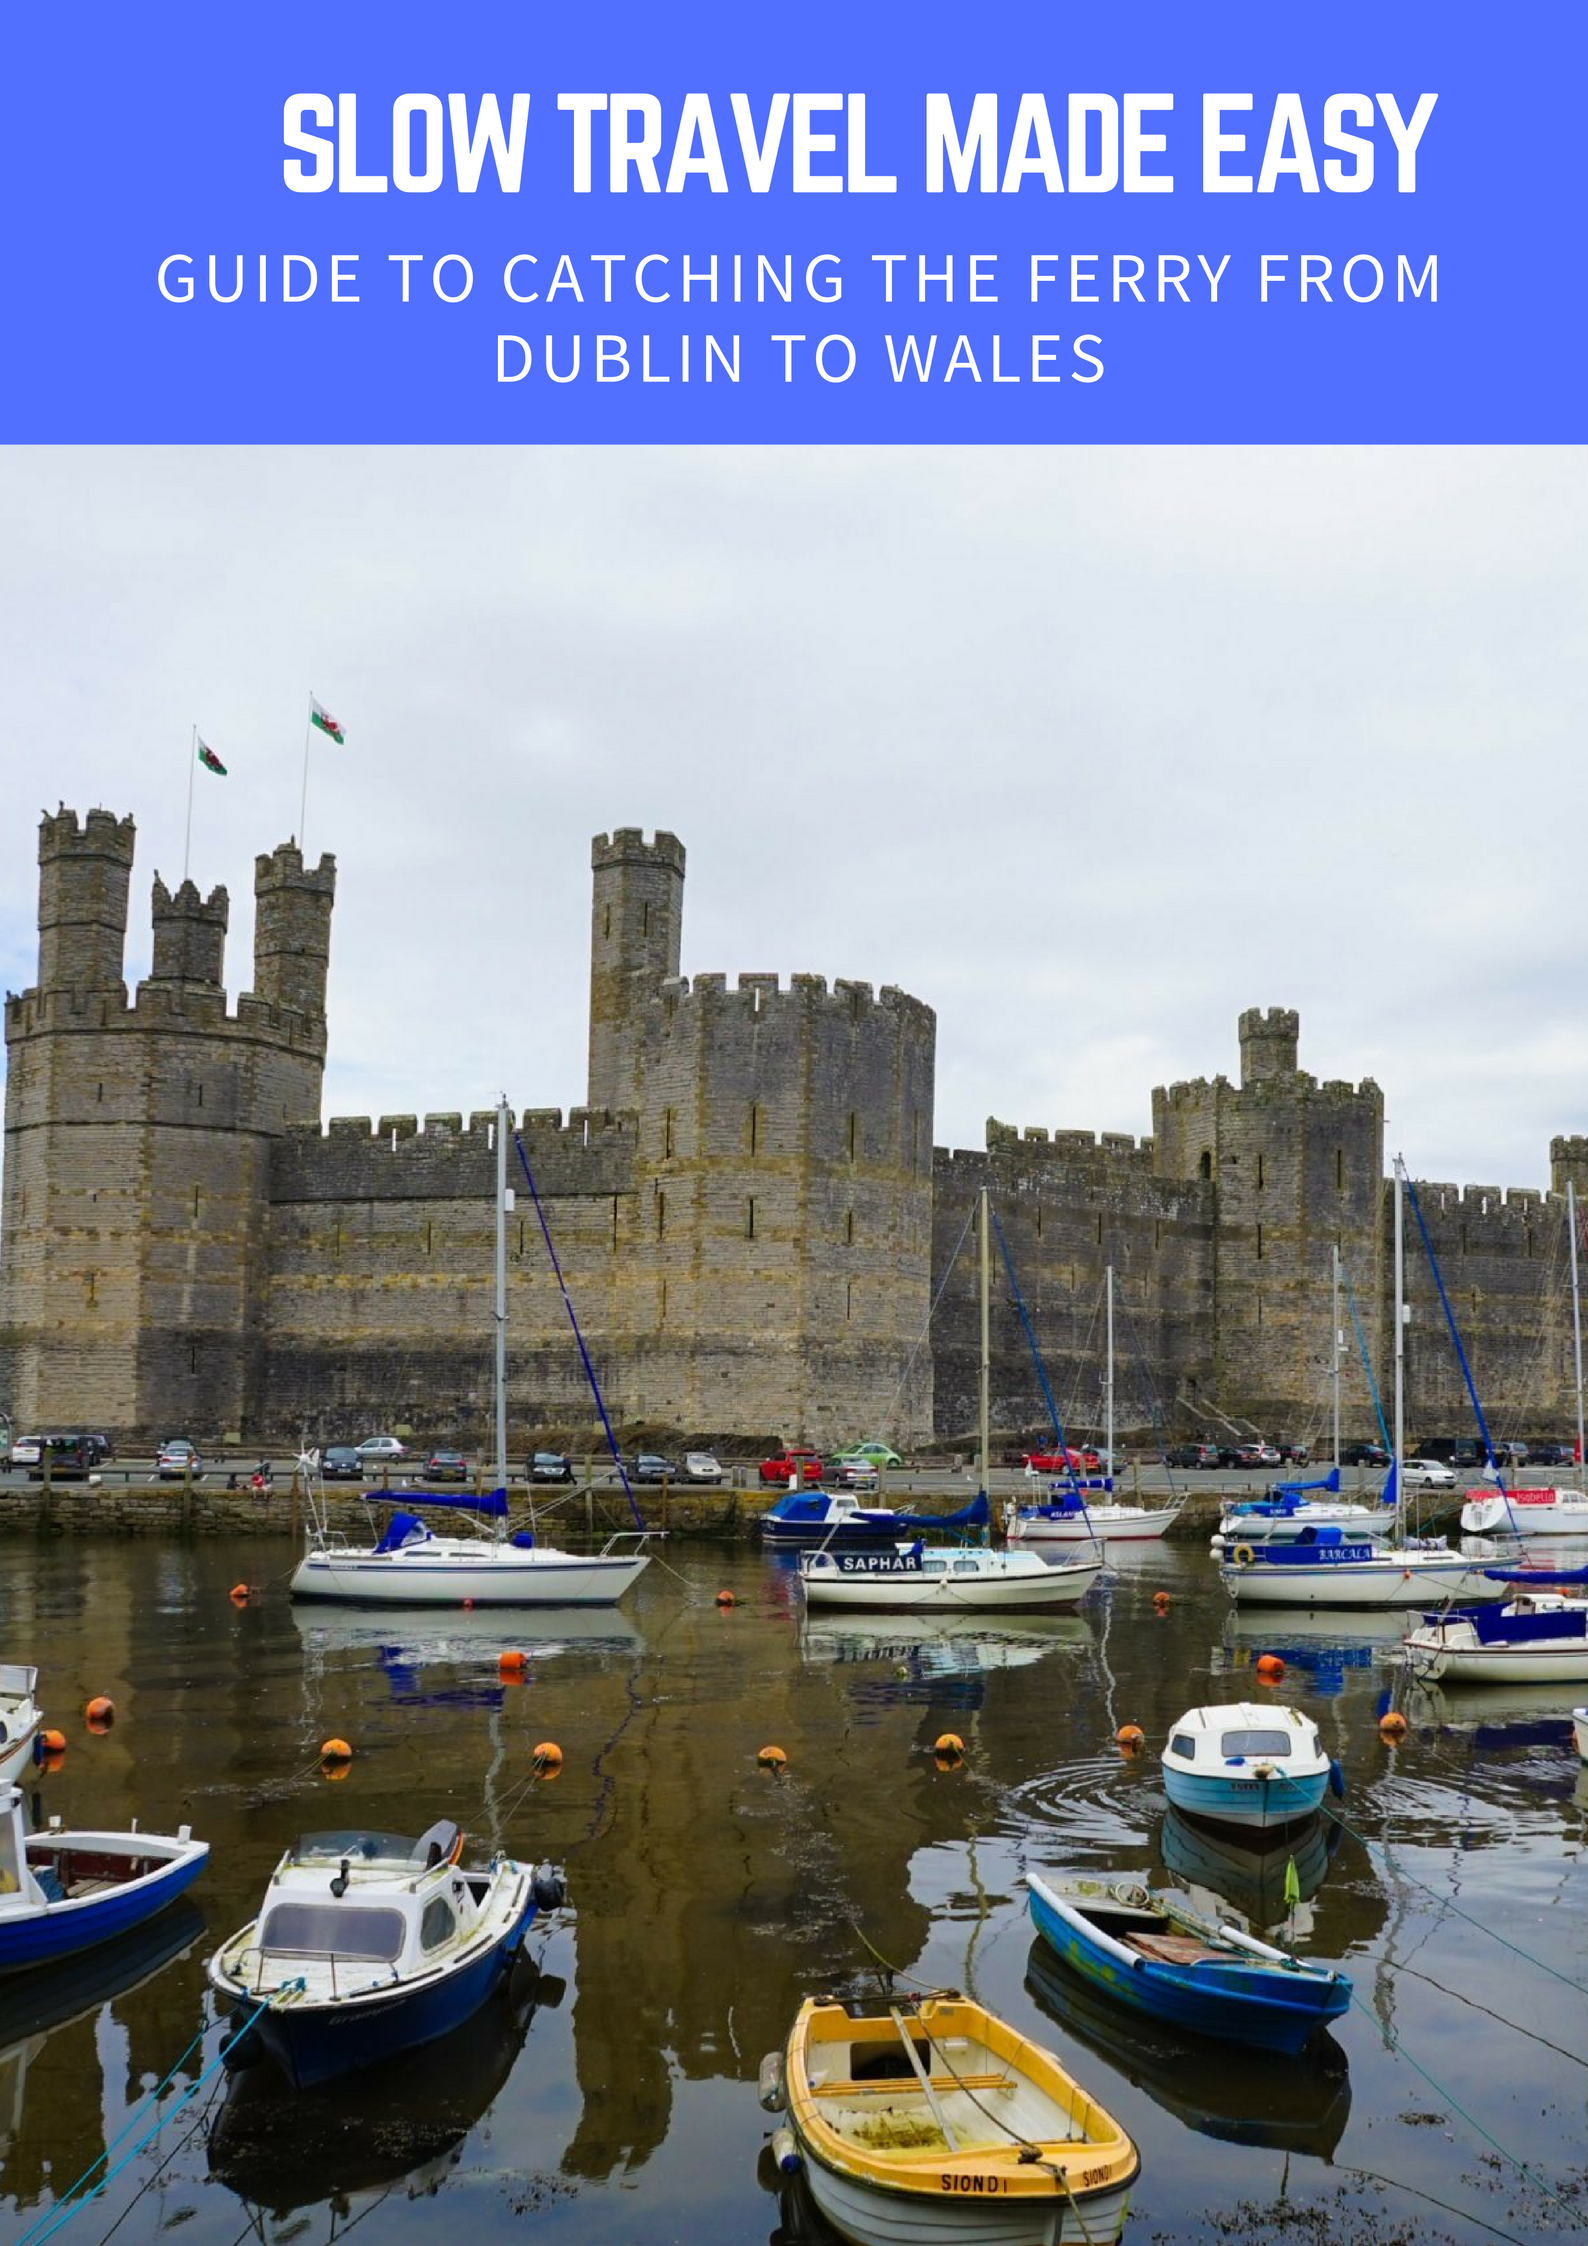 Catching the Ferry from Dublin to Wales. Ireland Travel Ideas. Wales Travel Ideas. United Kingdom on a budget. Travel Dublin on A budget ☆☆ Travel Guide / Bucket List Ideas Before I Die By #Inspiredbymaps ☆☆